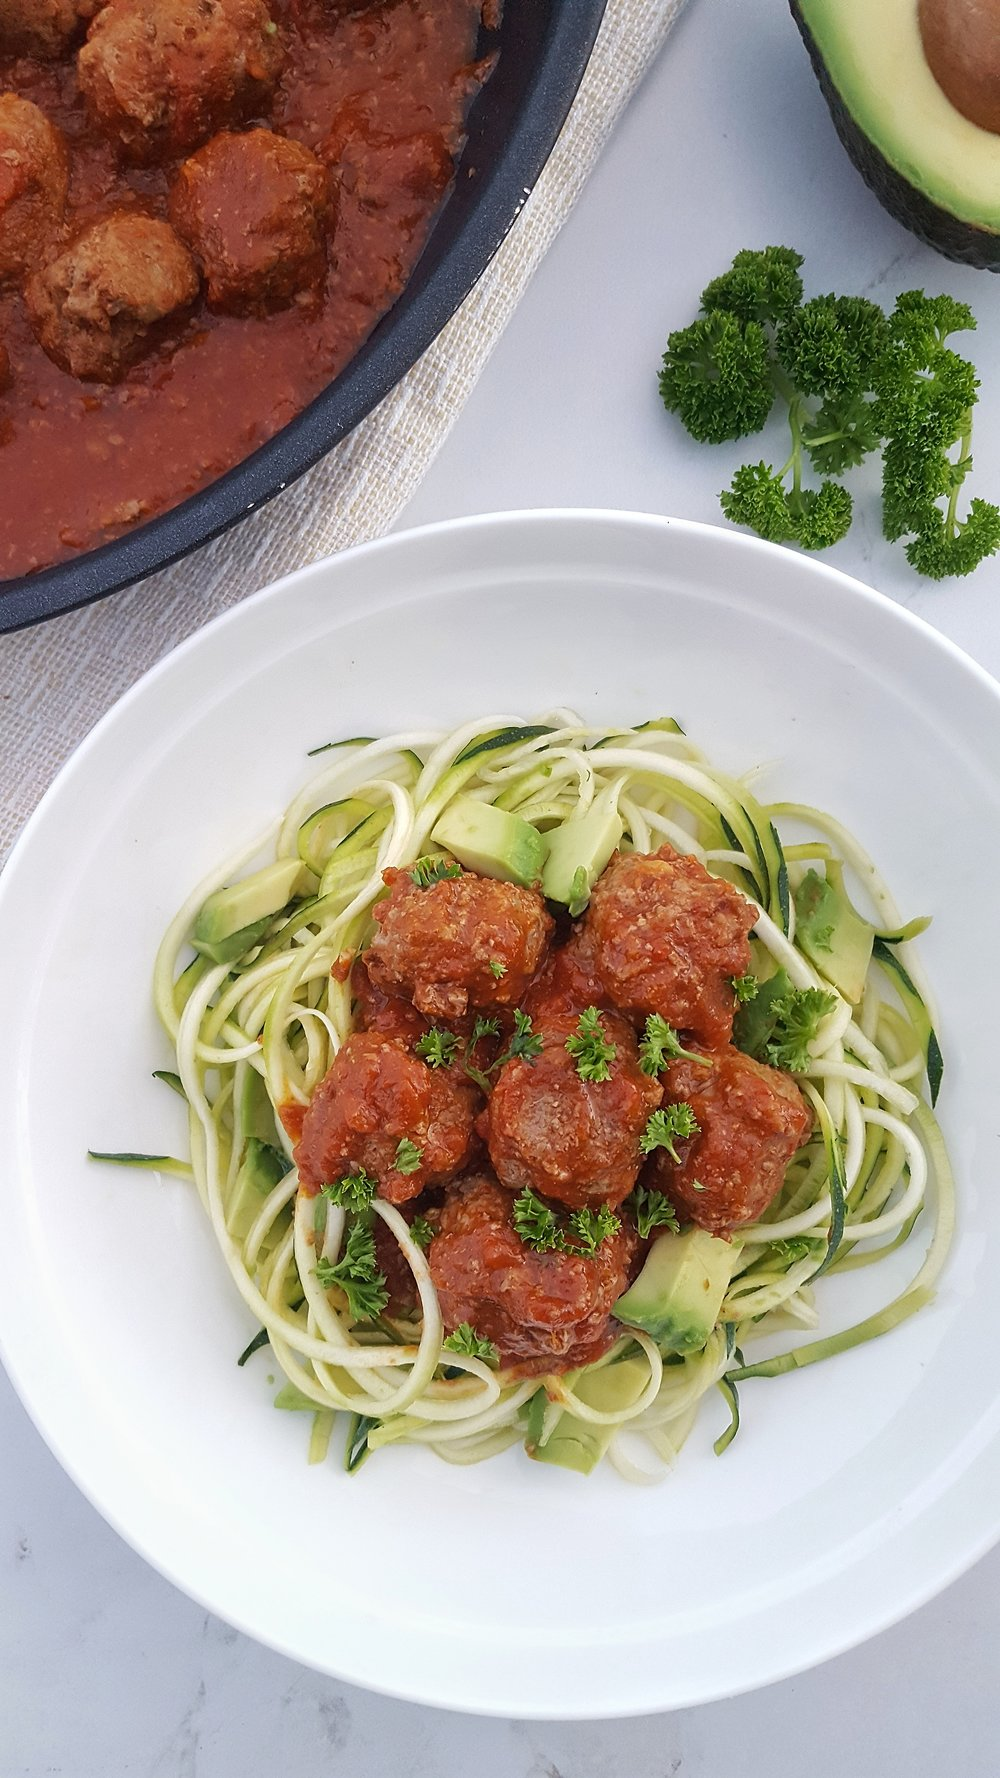 Natalie Brady - Beef Meatballs on Zoodles - 3.jpeg